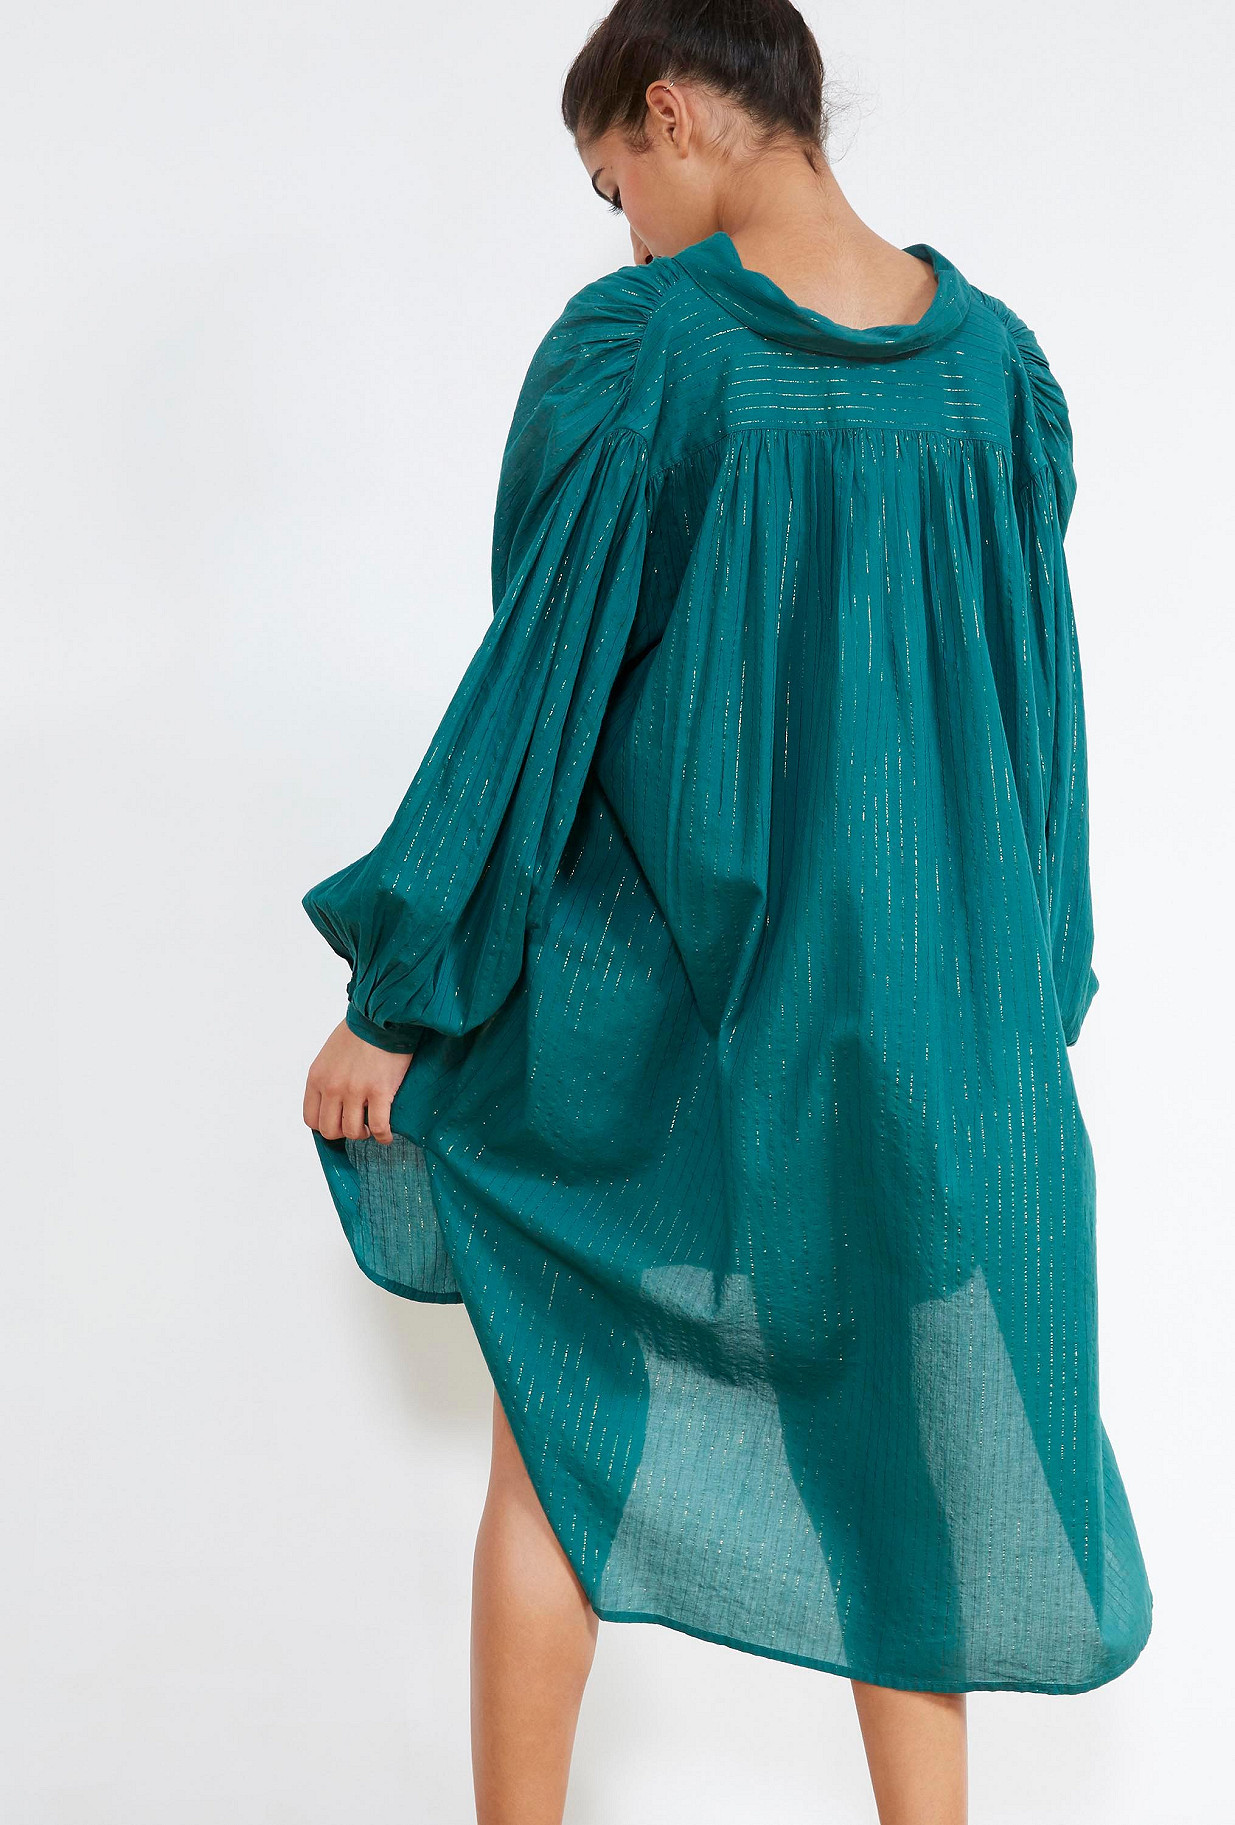 Green SHIRT Seymour Mes Demoiselles Paris